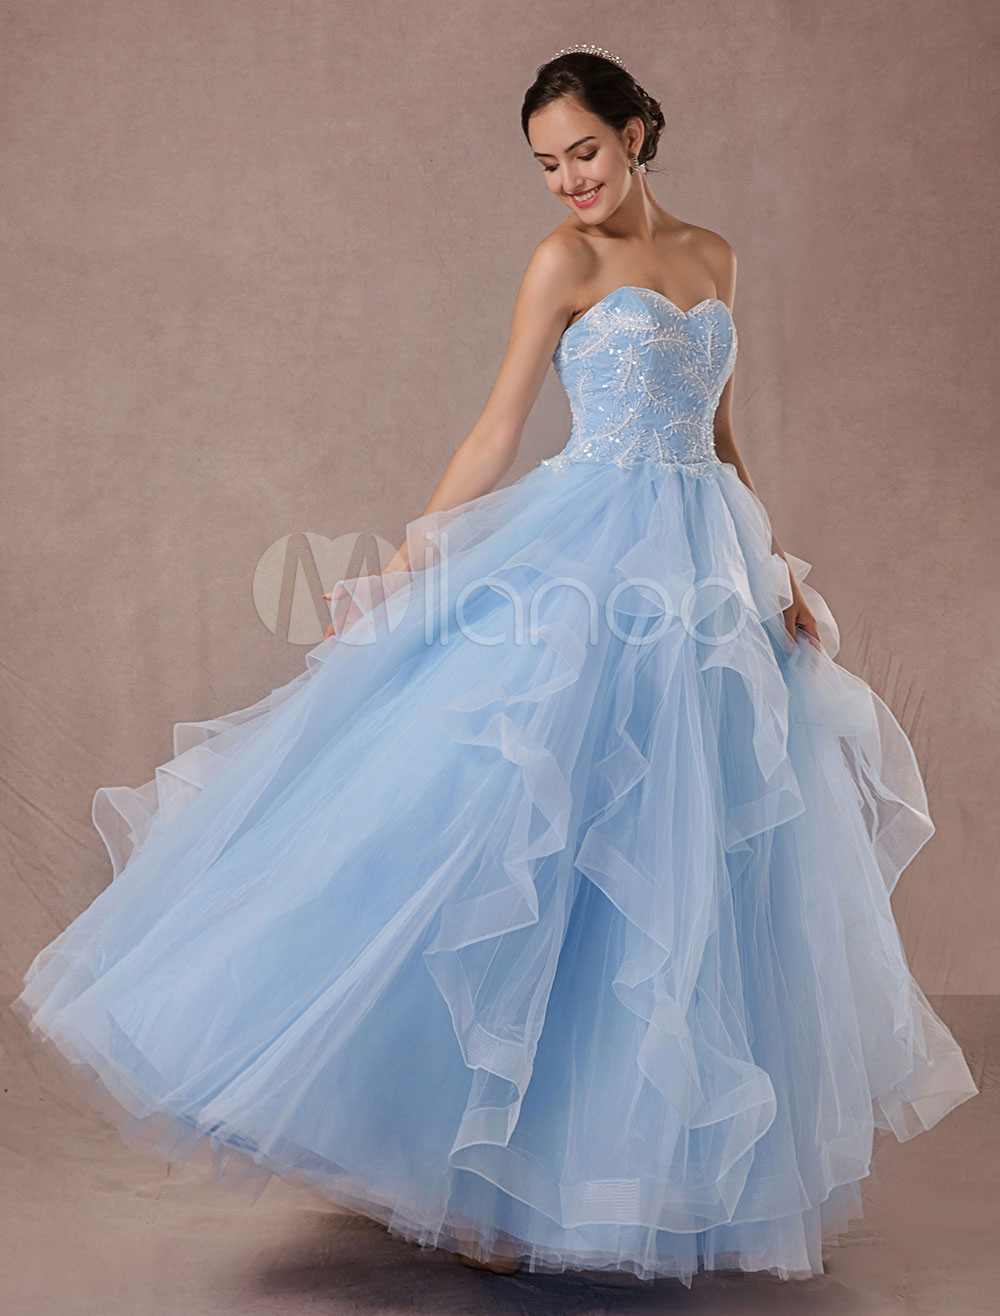 Buy Blue Wedding Dress Tulle Ball Gown Lace Applique Strapless Beading Princess Bridal Gown Backless Floor-length Pageant Dress for $289.79 in Milanoo store